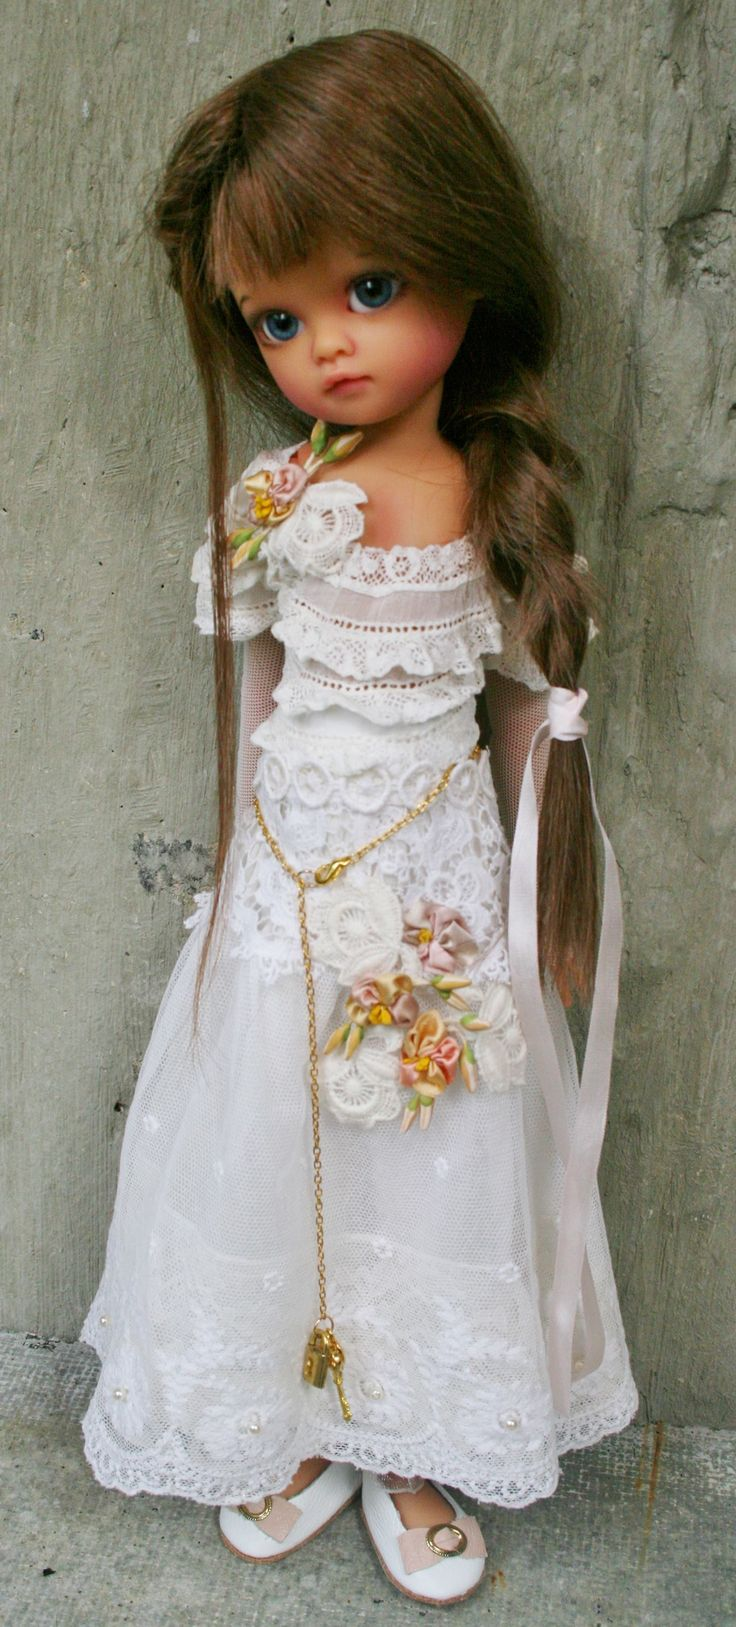 Cattelia: One of a Kind Ball Jointed Doll